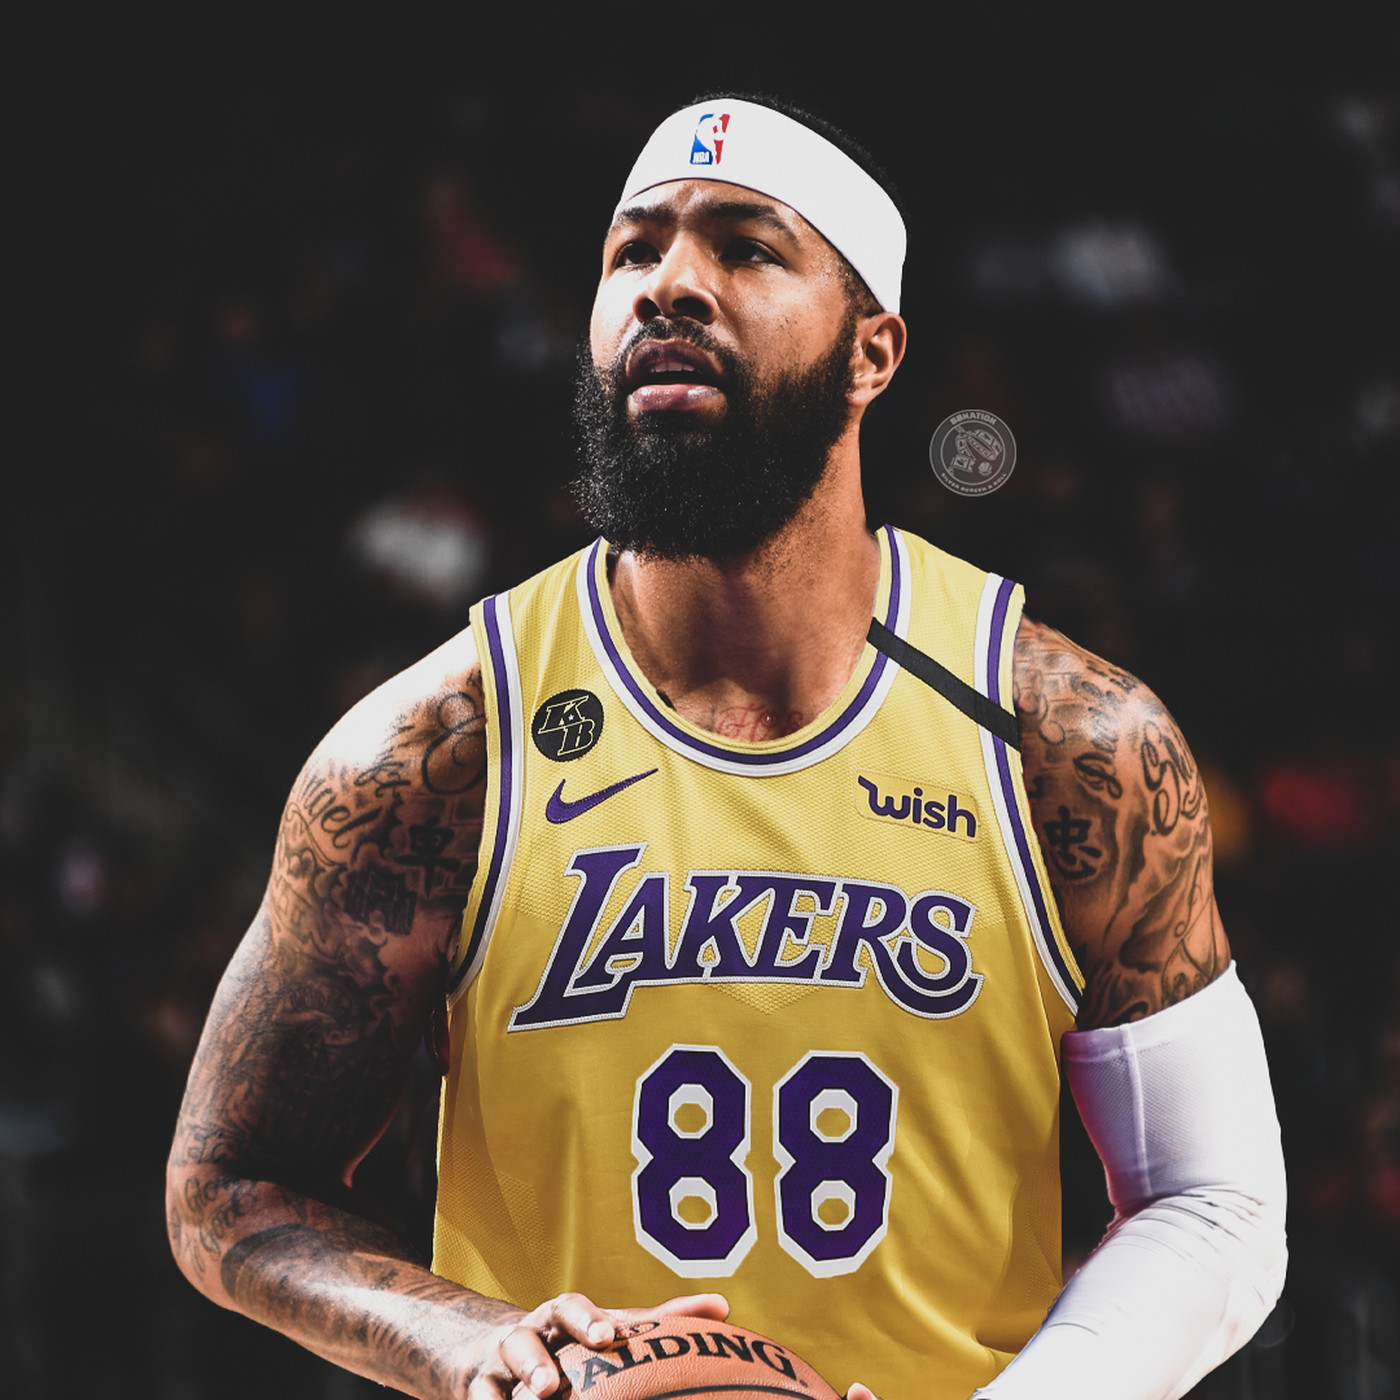 Nba Rumors Markieff Morris To Sign With Lakers Silver Screen And Roll